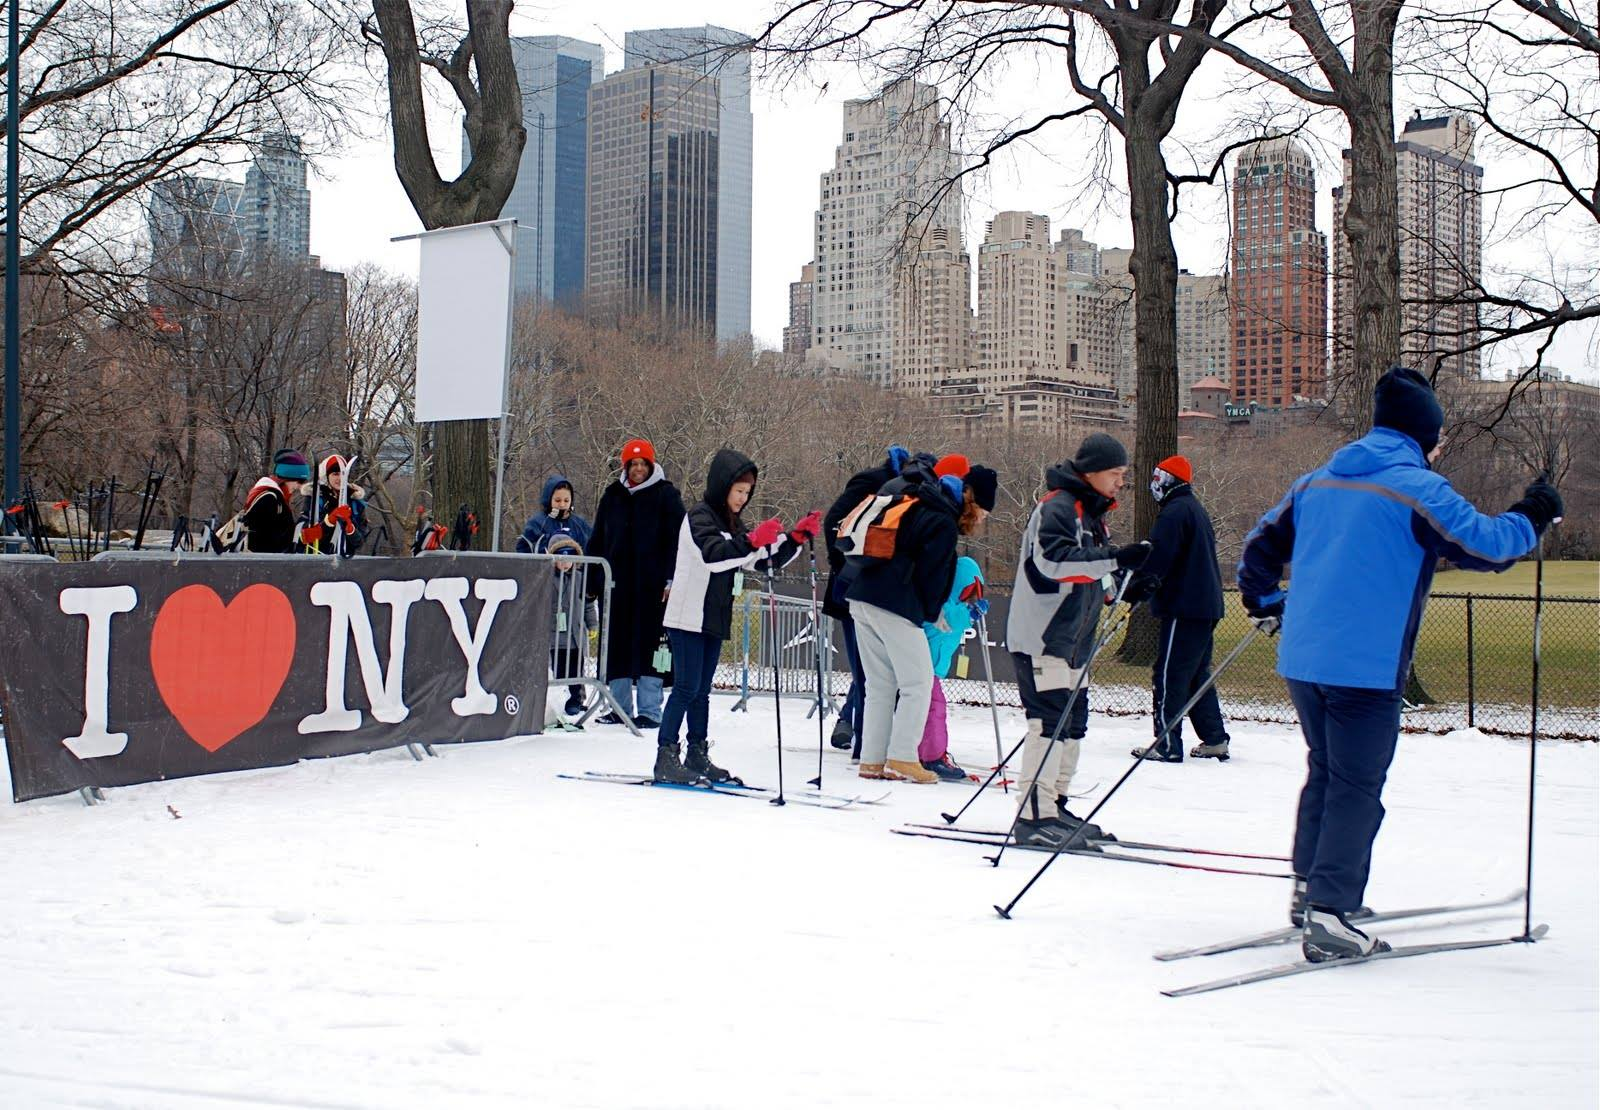 People on skis in Central Park.